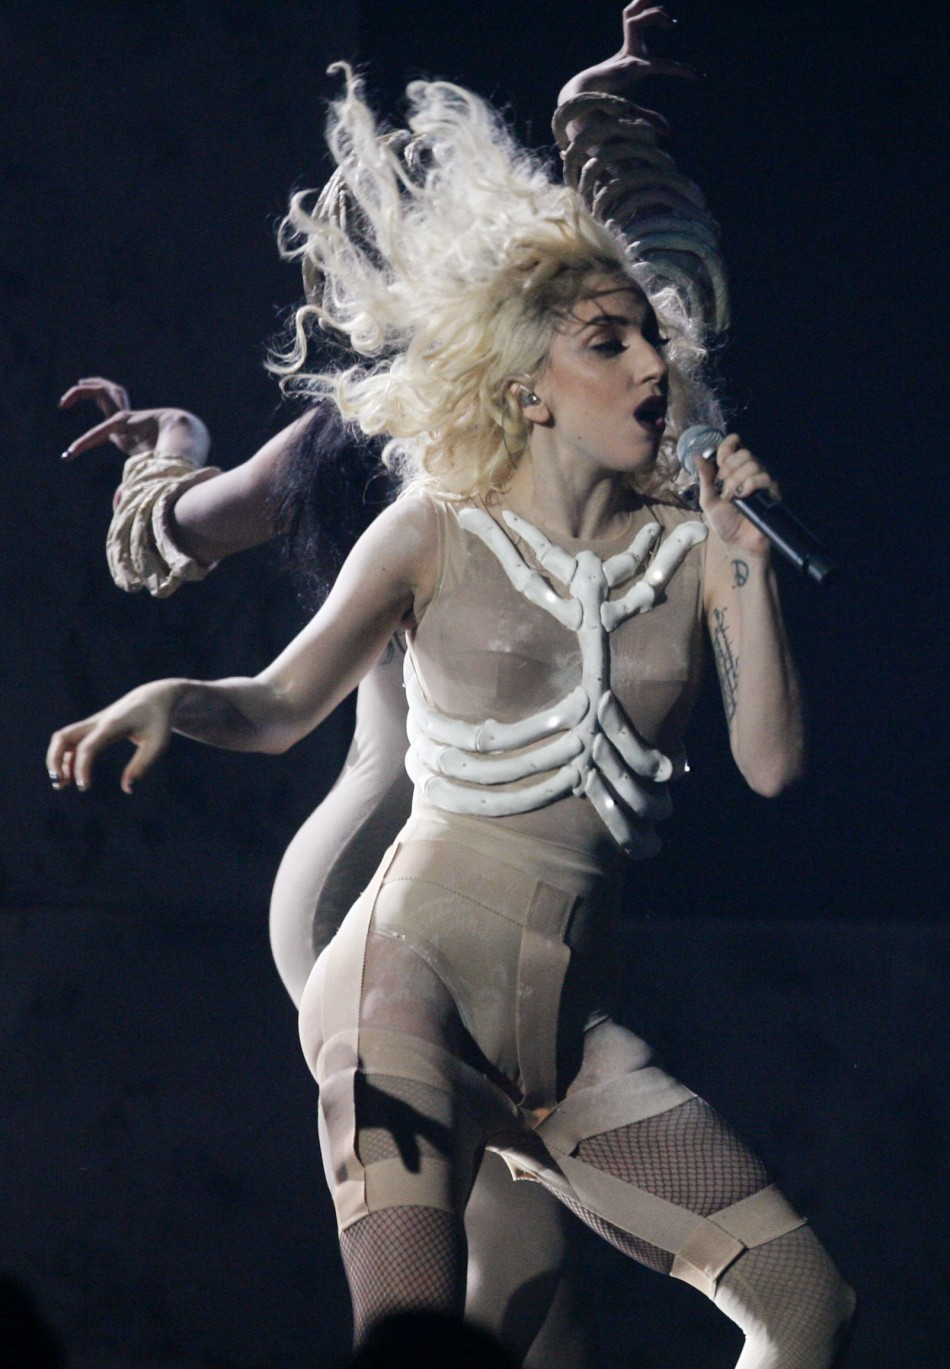 Lady Gaga performs at the 2009 American Music Awards in Los Angeles